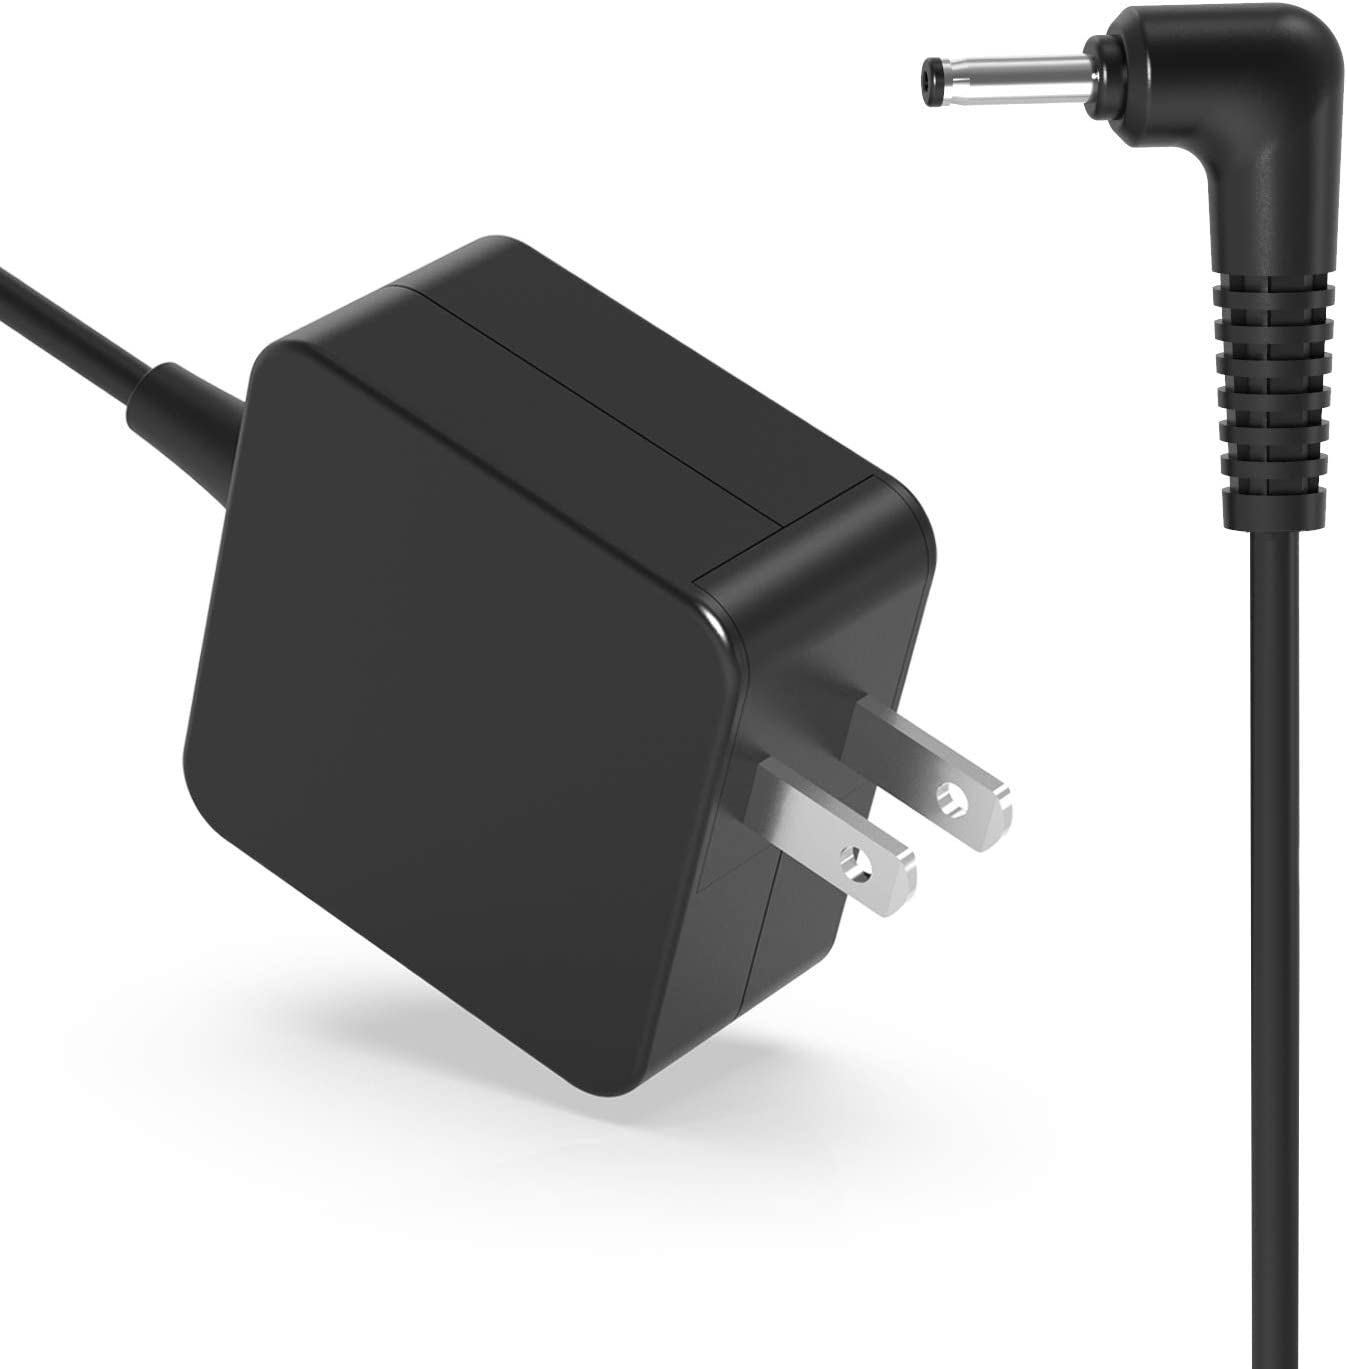 Chromebook Charger AC Adapter Fit for Samsung Chromebook 3 & 2 PA-1250-98 XE500C13 XE501C13 XE500C12 XE303C12 XE503C12 XE503C32 W14-026N1A BA44-00322A 12V 2.2A Laptop Chrome Power Supply Cord 26W